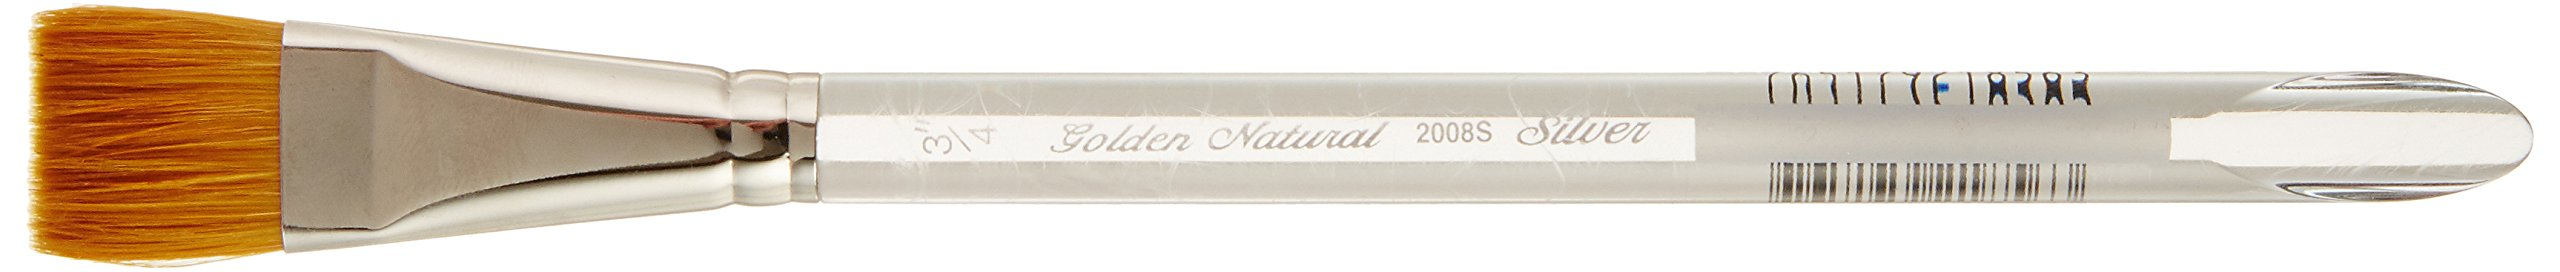 Silver Brush 2008S-034 Golden Natural Hair and Taklon Short Handle Blend Brush, Square Wash, 3/4-Inch by Silver Brush Limited